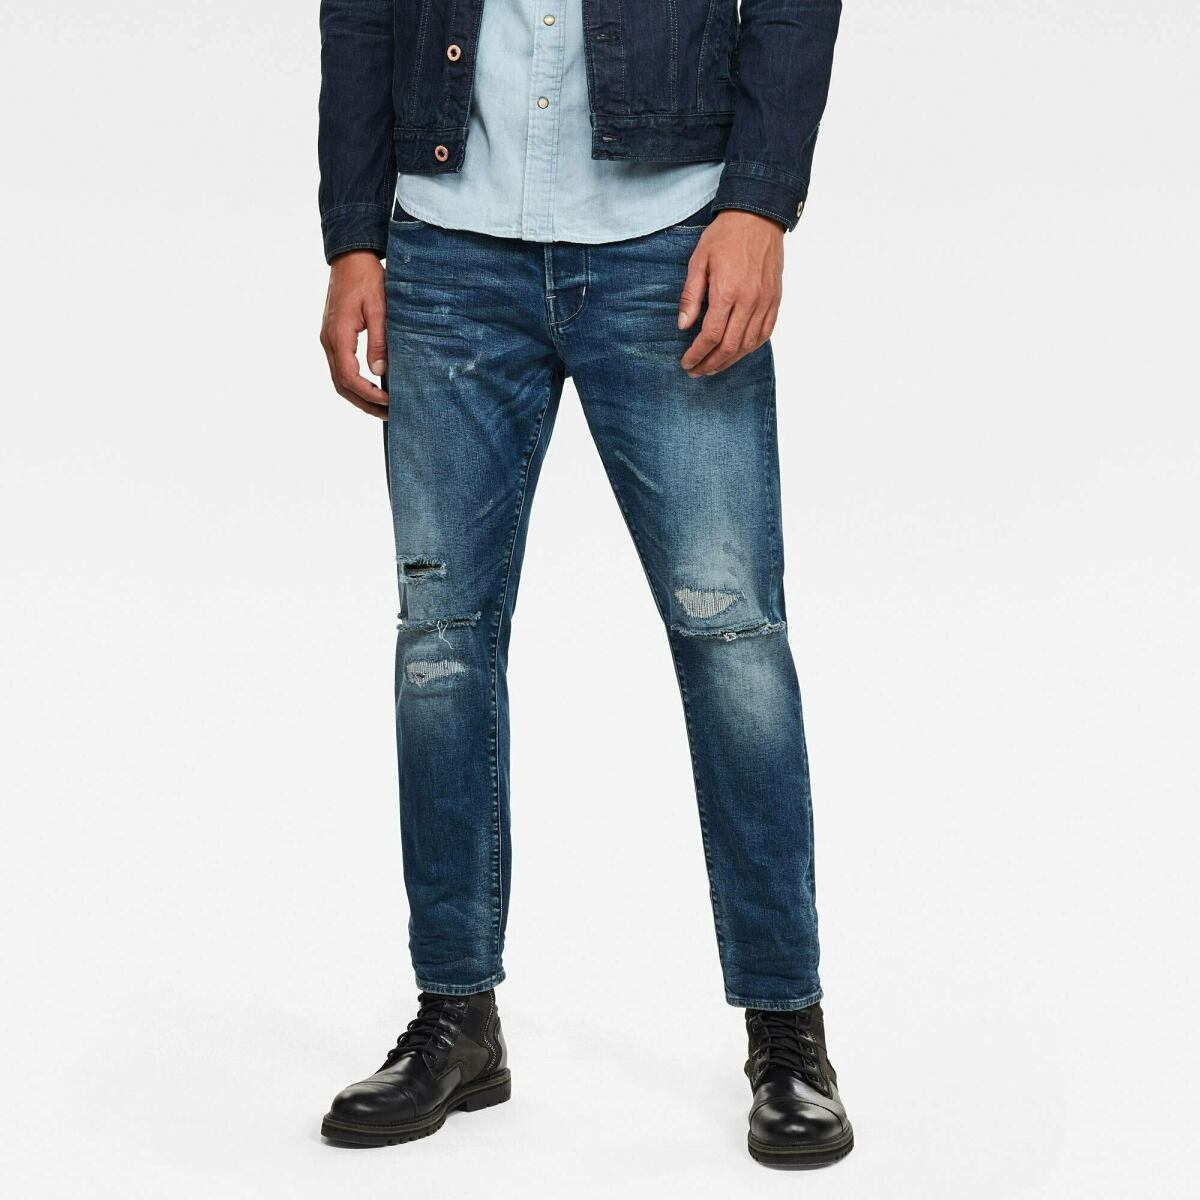 Medium blue Man Jeans Loic N Relaxed Tapered Jeans G-Star MEN